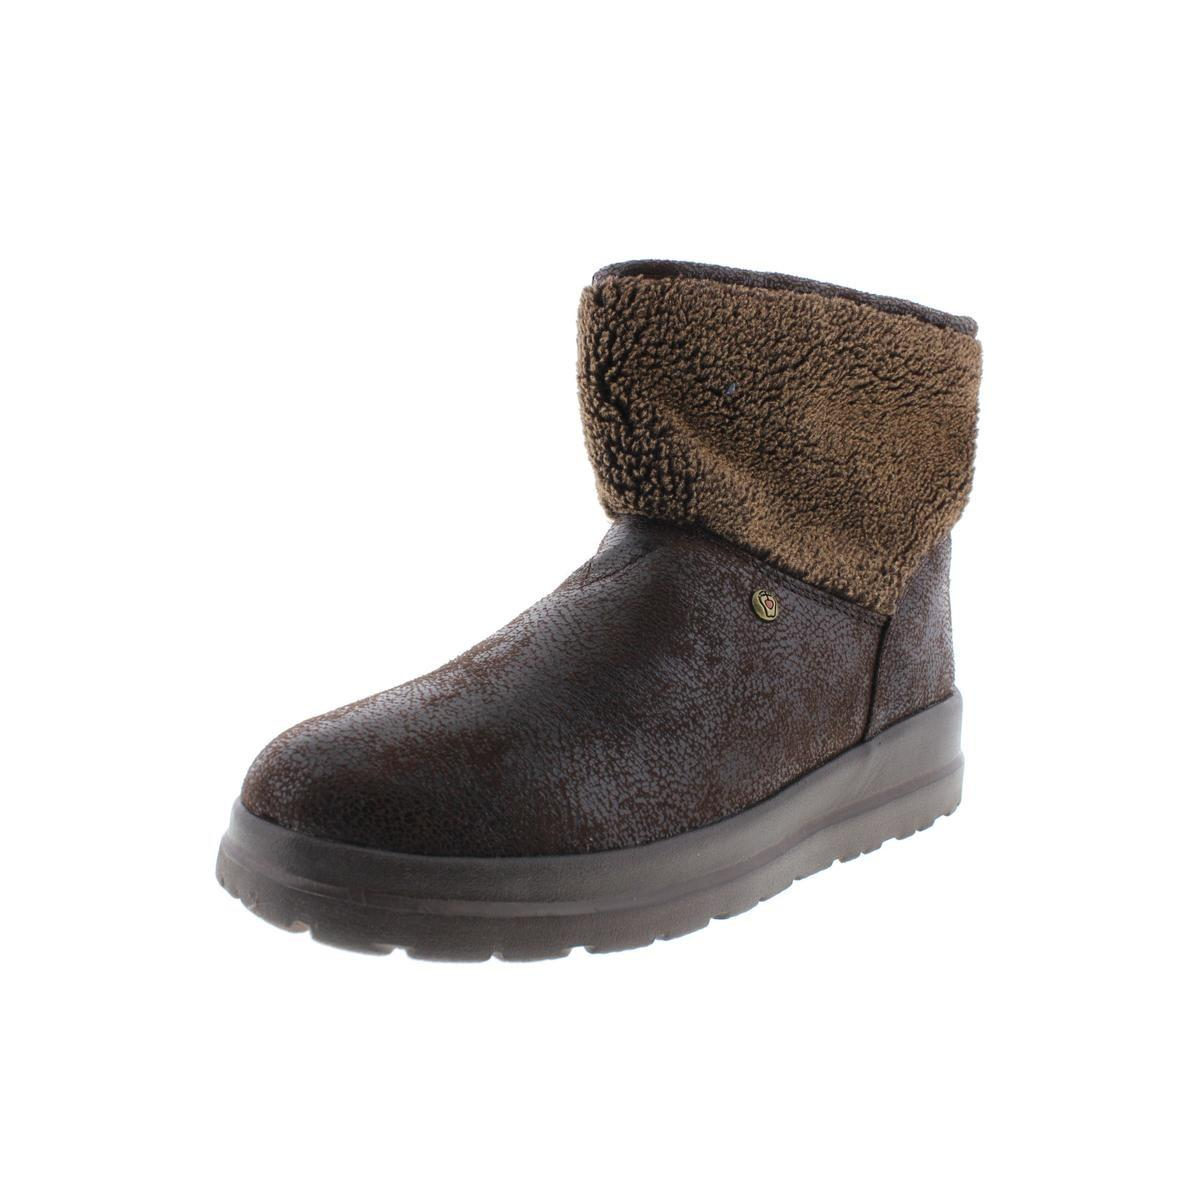 105a3a8b5ba0 Lyst - Skechers Womens Cherish Freedom Ride Faux Leather Relaxed Fit ...